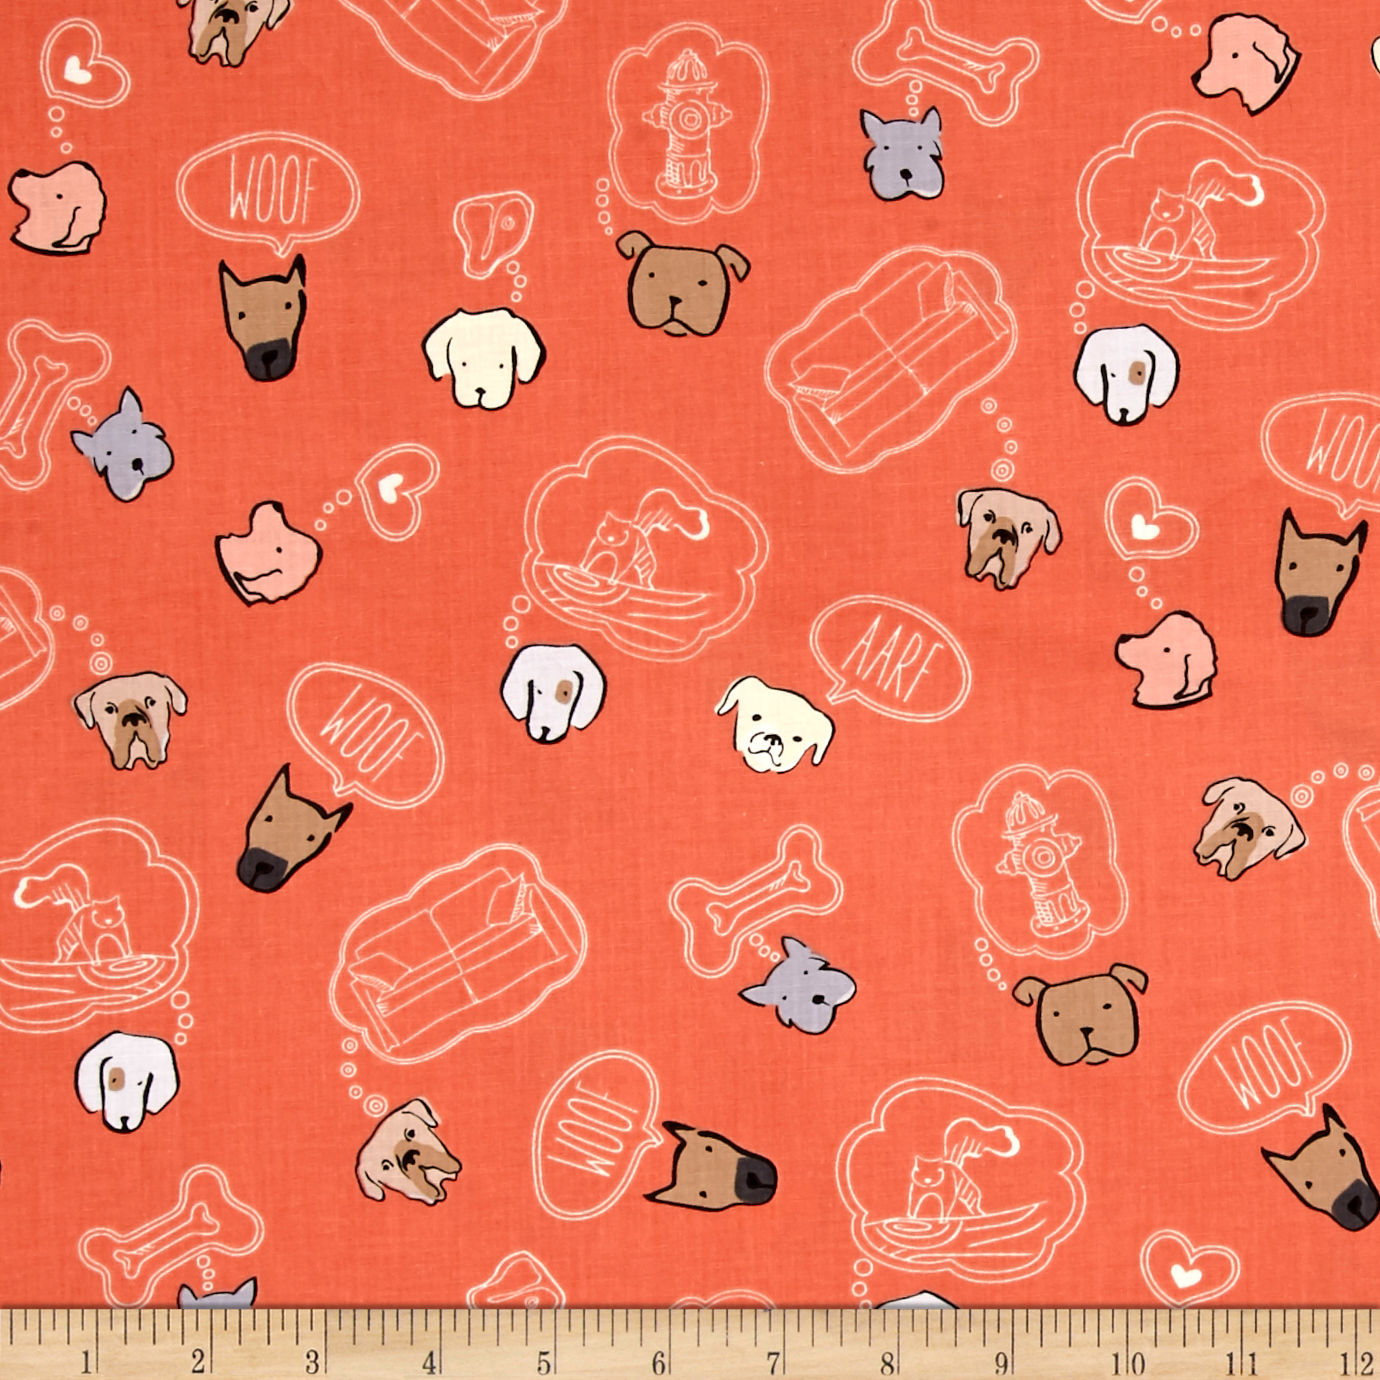 Dawg Dawg Thoughts Salmon Fabric by Quilting Treasures in USA